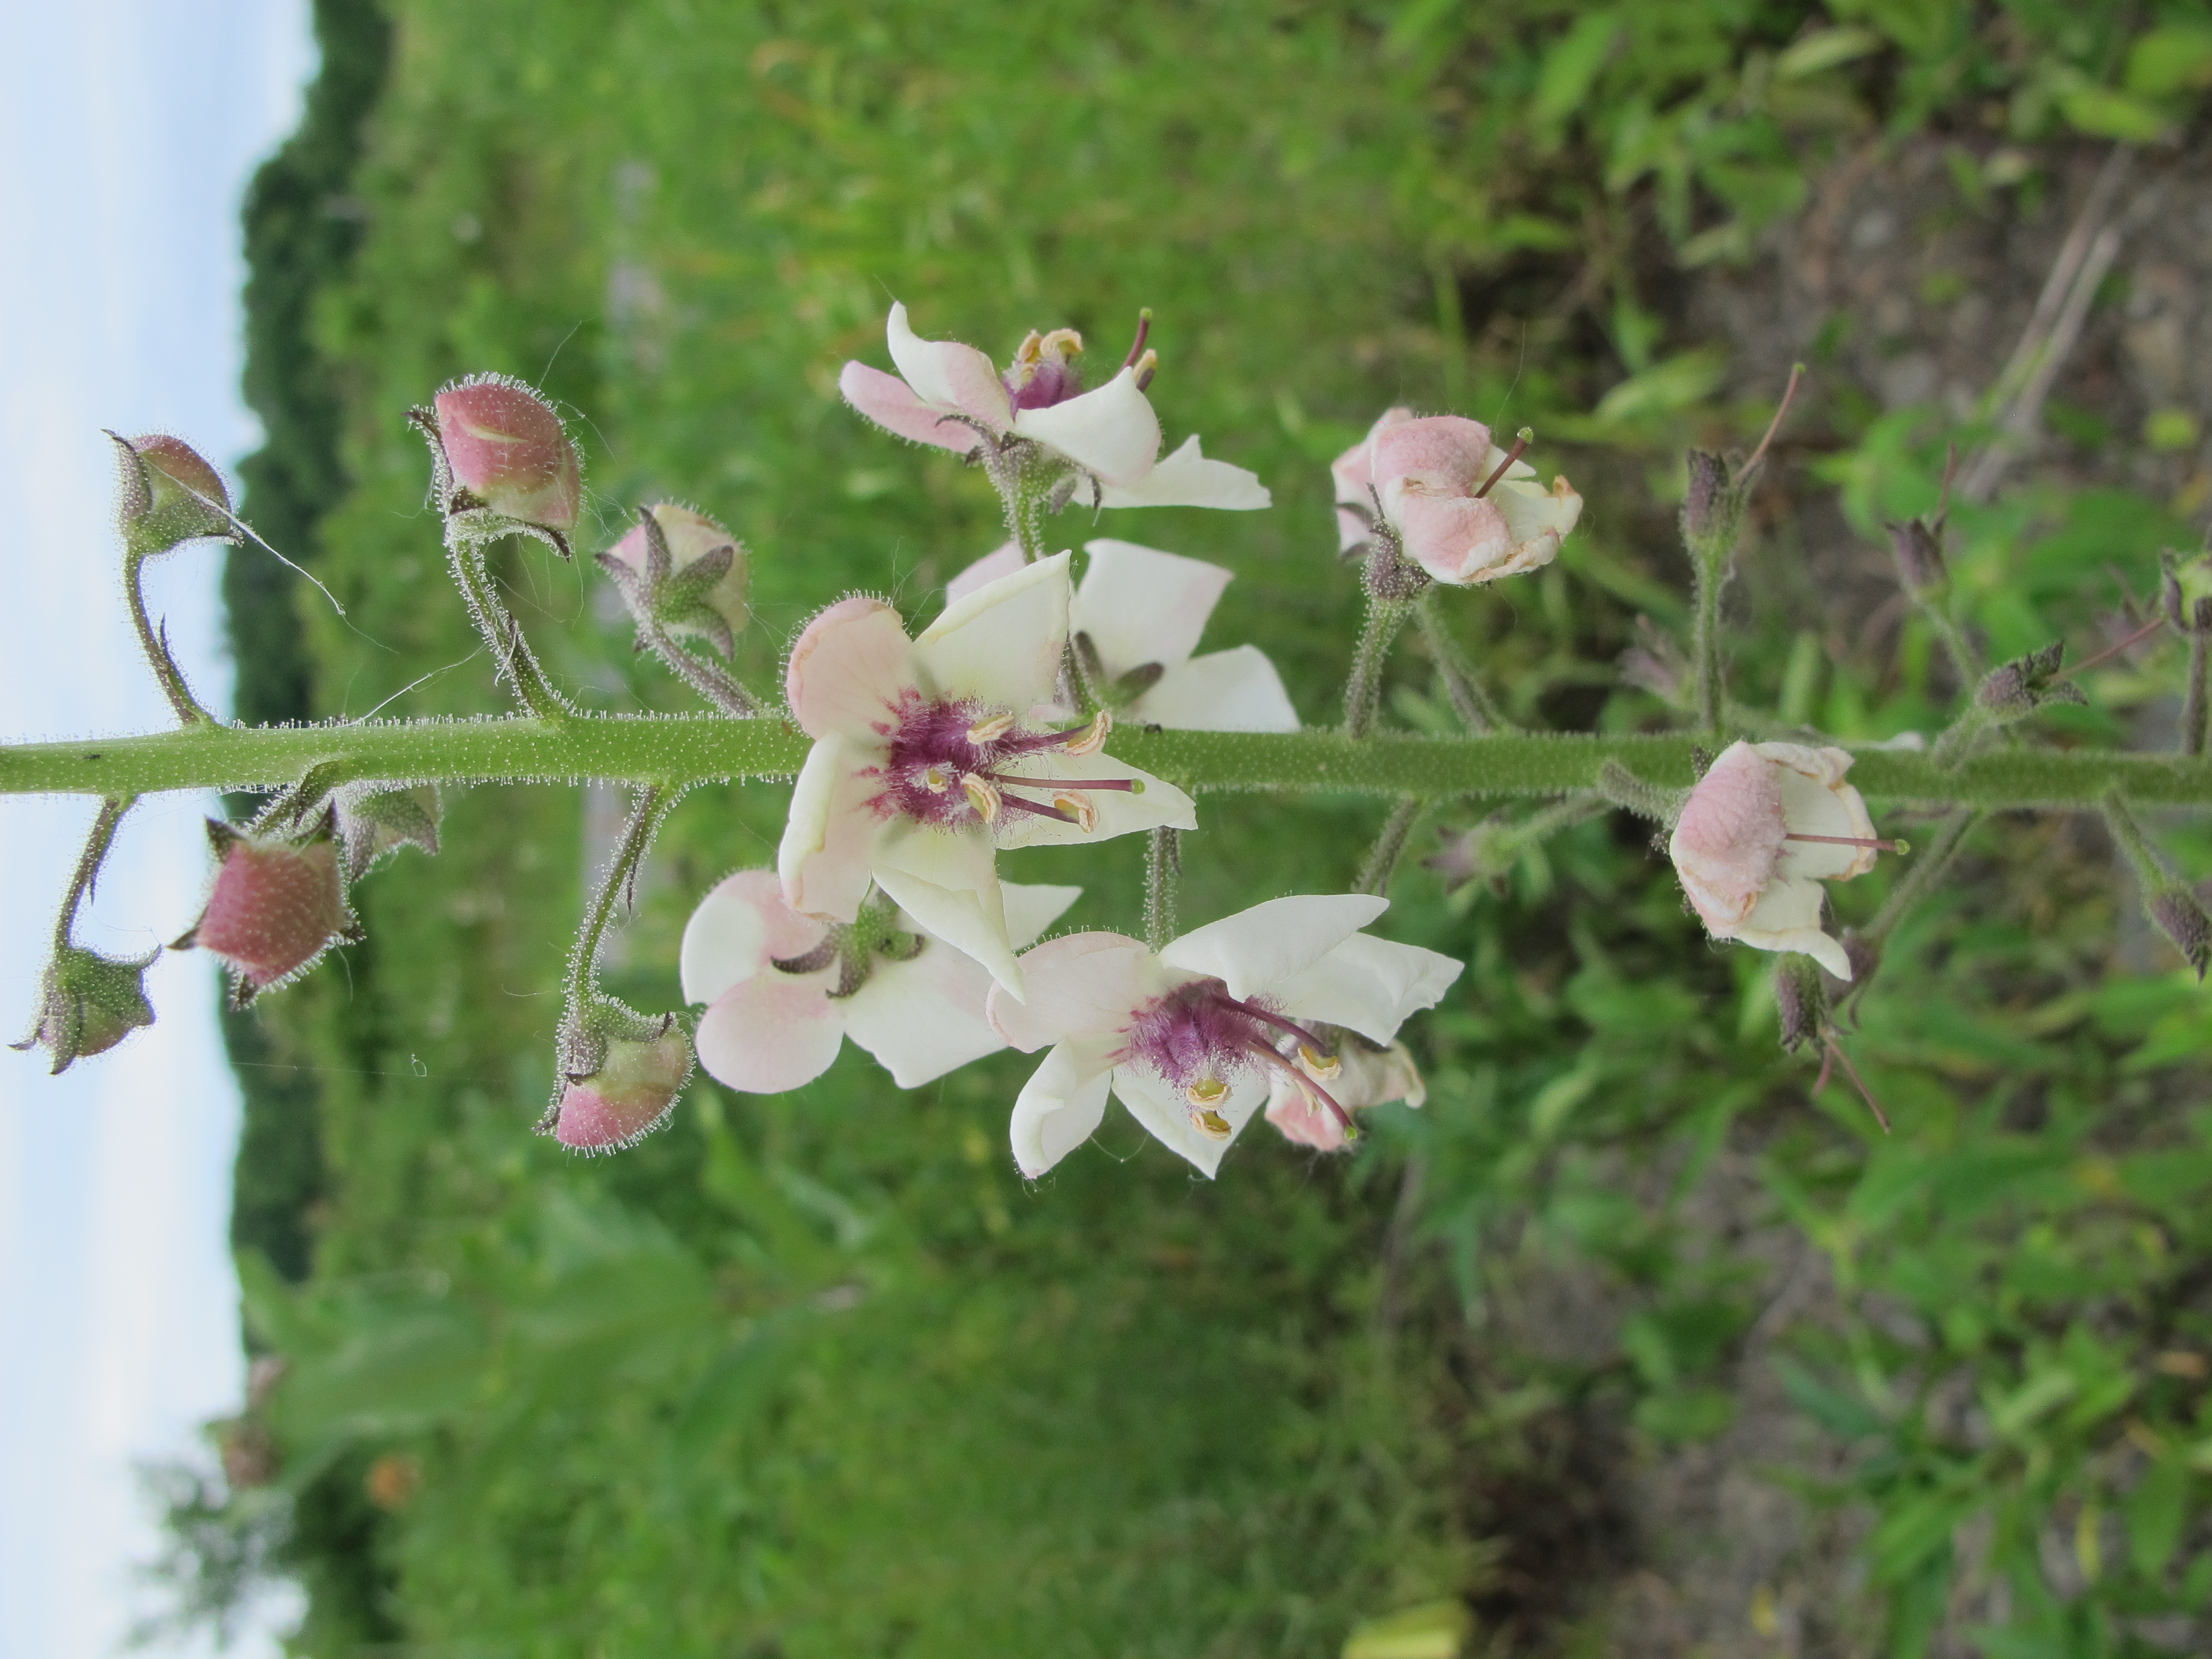 close-up view of white and purple moth mullein flower